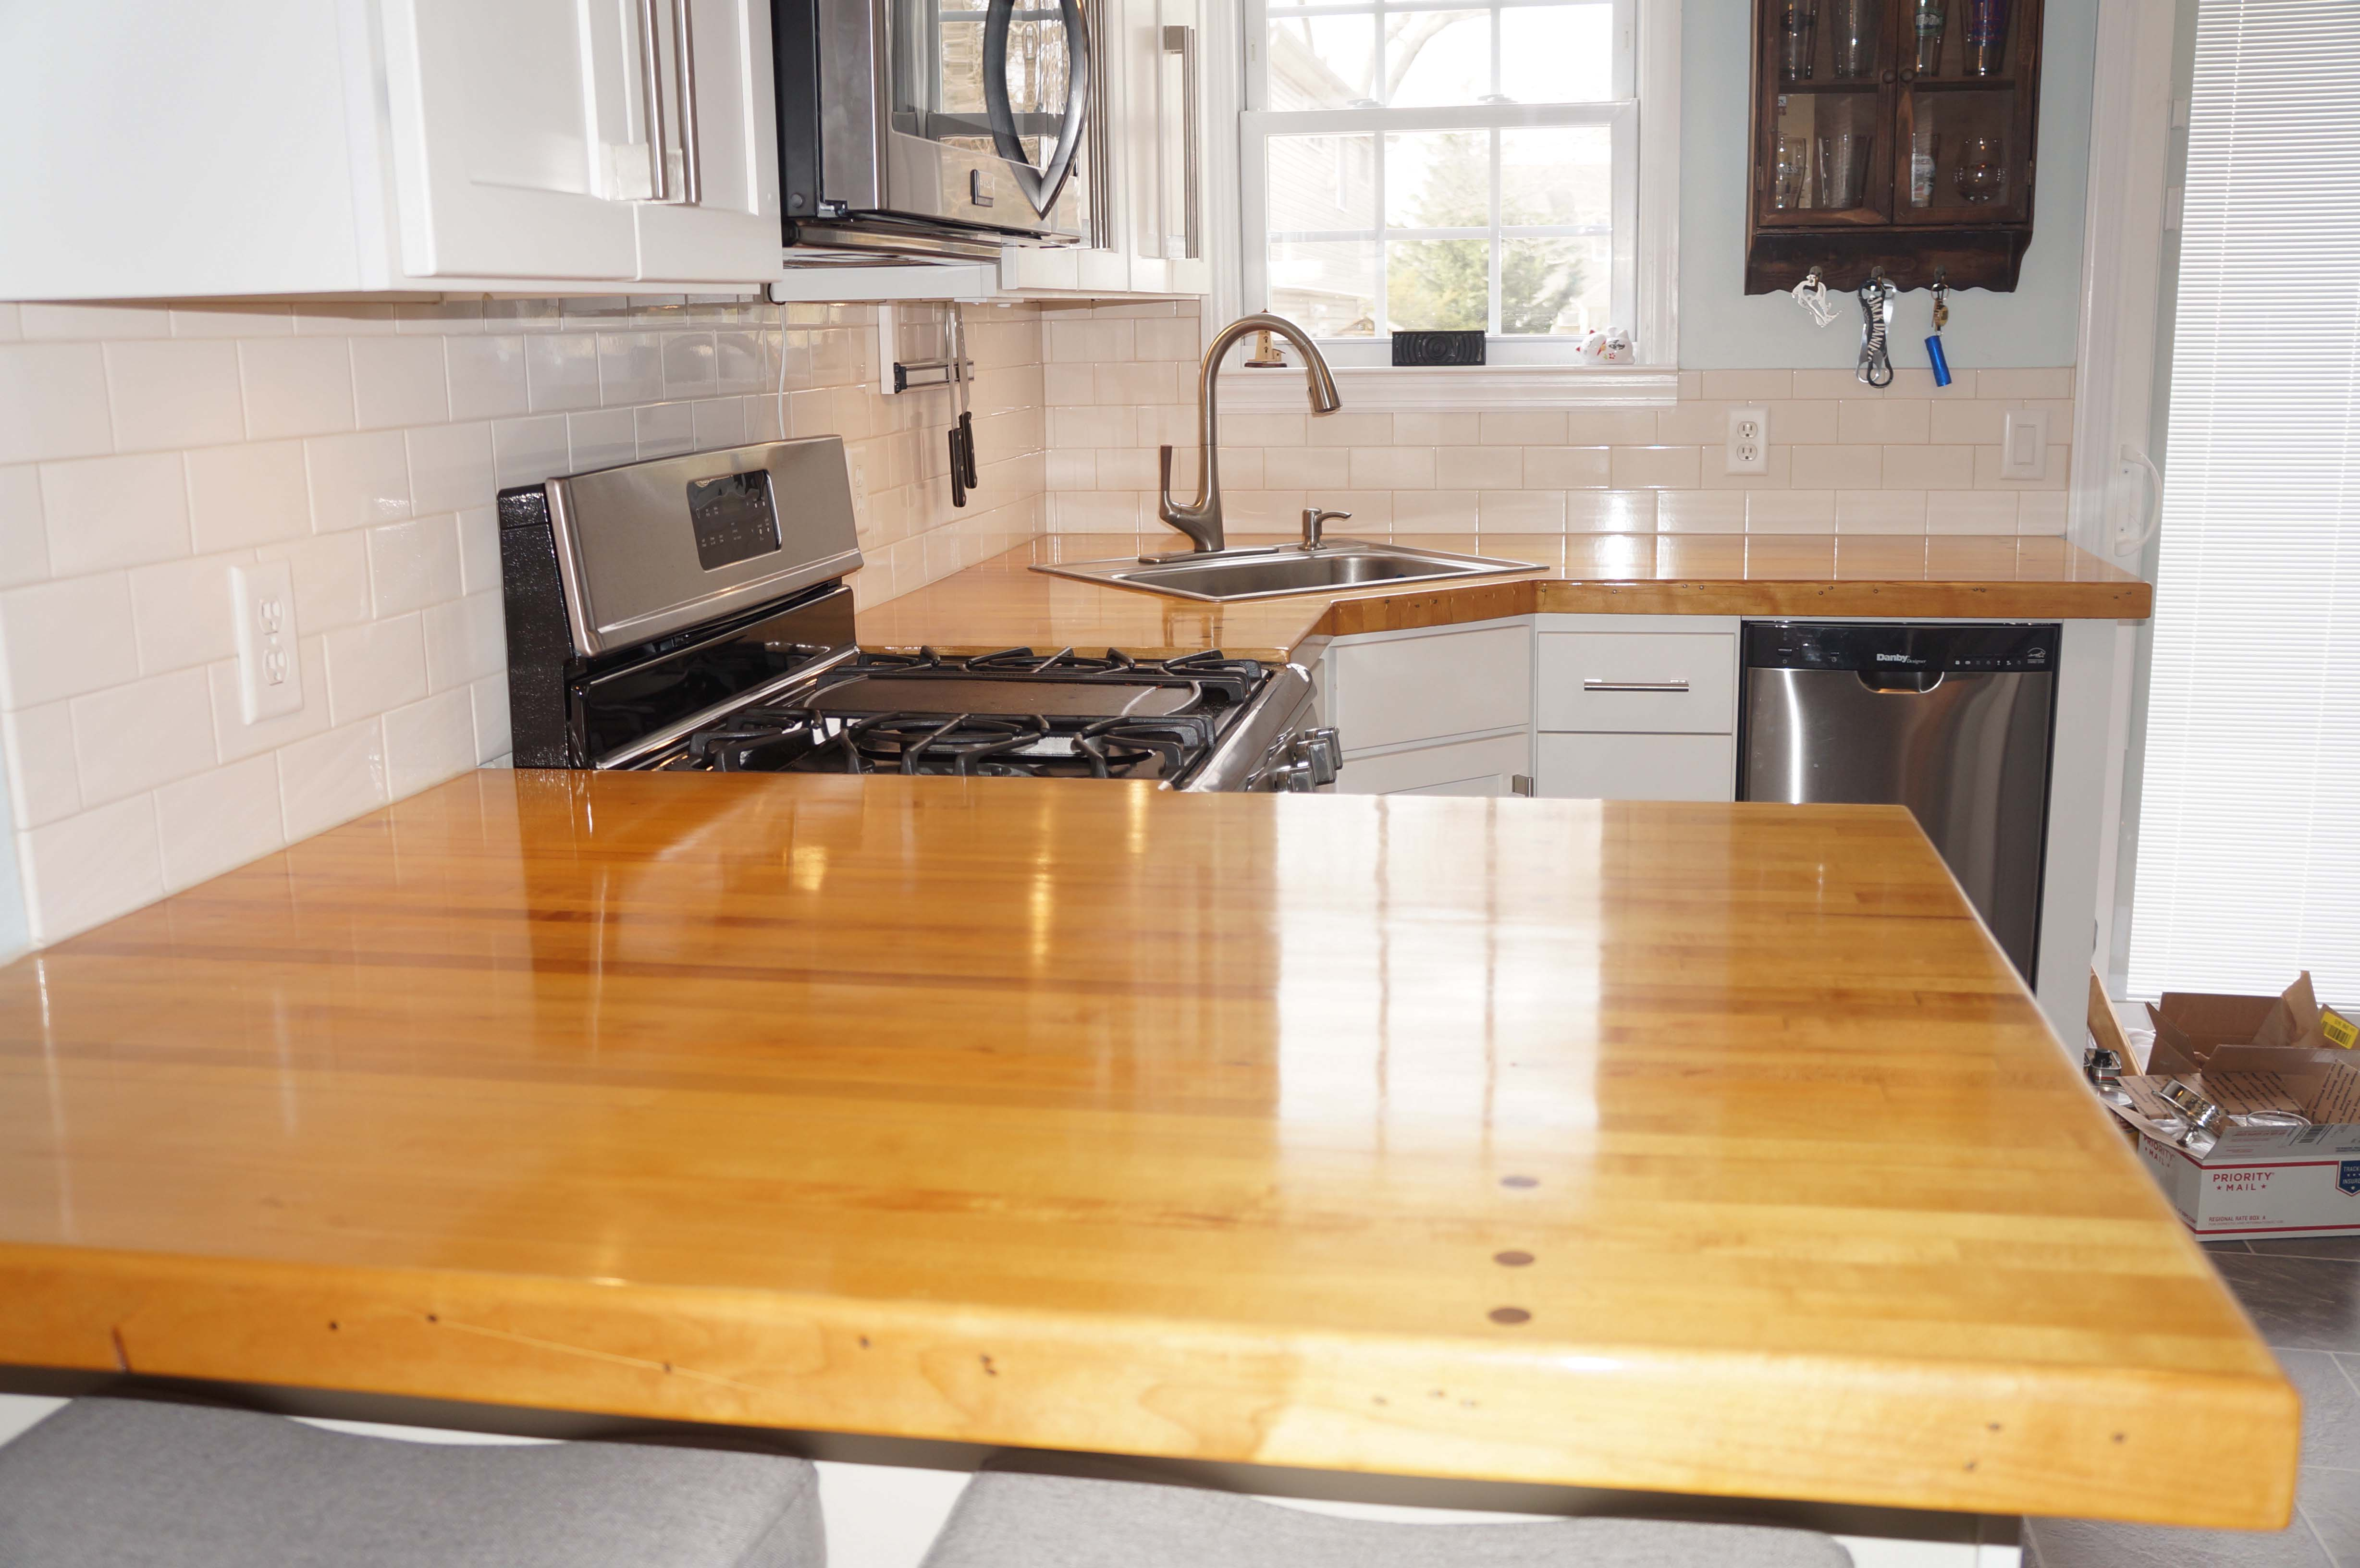 Kitchen Countertops  Project Journals  Wood Talk Online. Club Chairs For Living Room. Decorative Recessed Lighting. Living Room Wall Pictures. Interior Decorating Careers. College Dorm Room Bedding. Celtic Wall Decor. Hotel Rooms Myrtle Beach Sc. Decorated Tabletop Christmas Trees